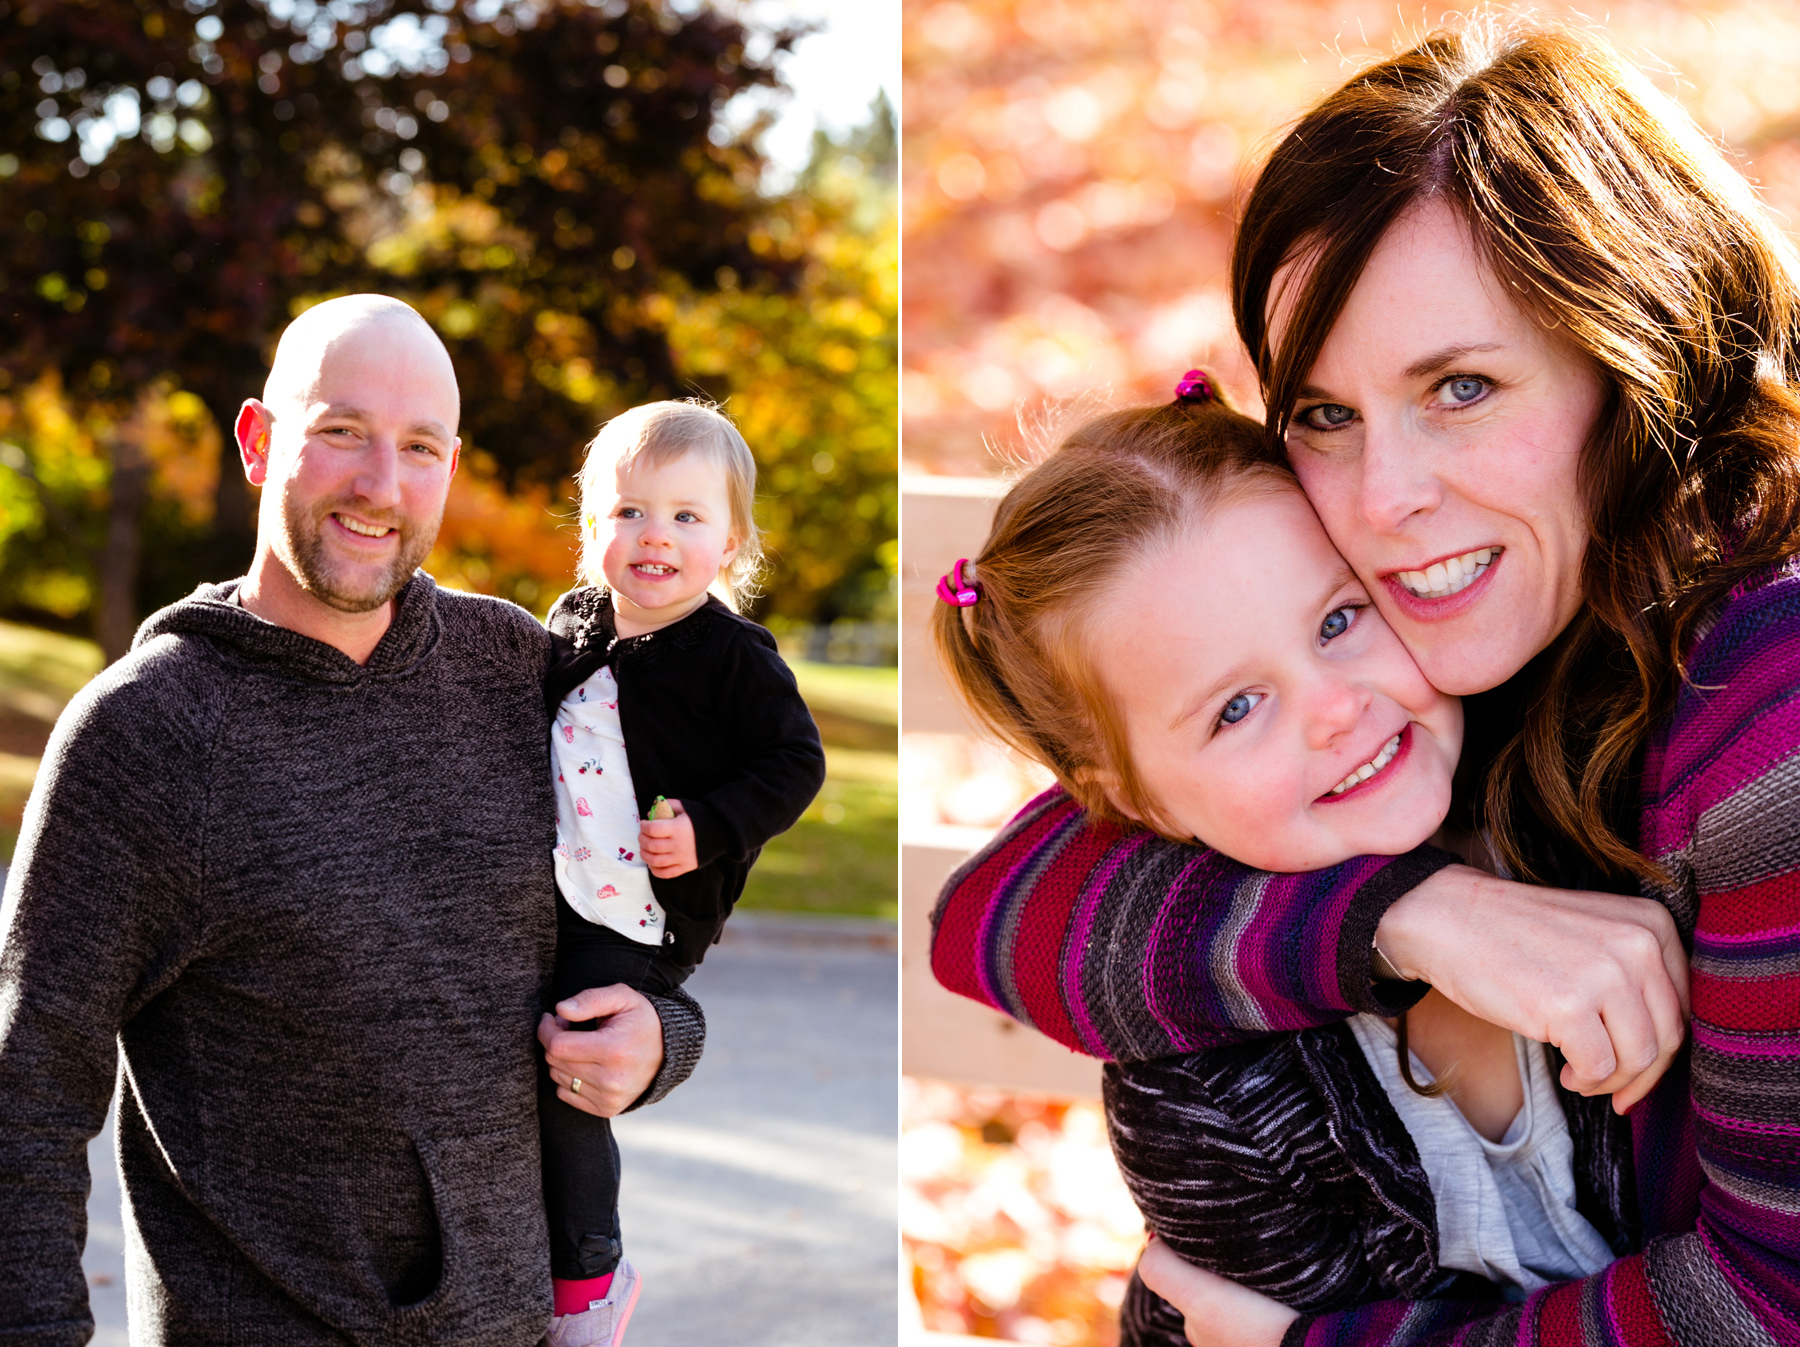 003-fredericton-fall-family-portraits-photography-kandisebrown-sf2017